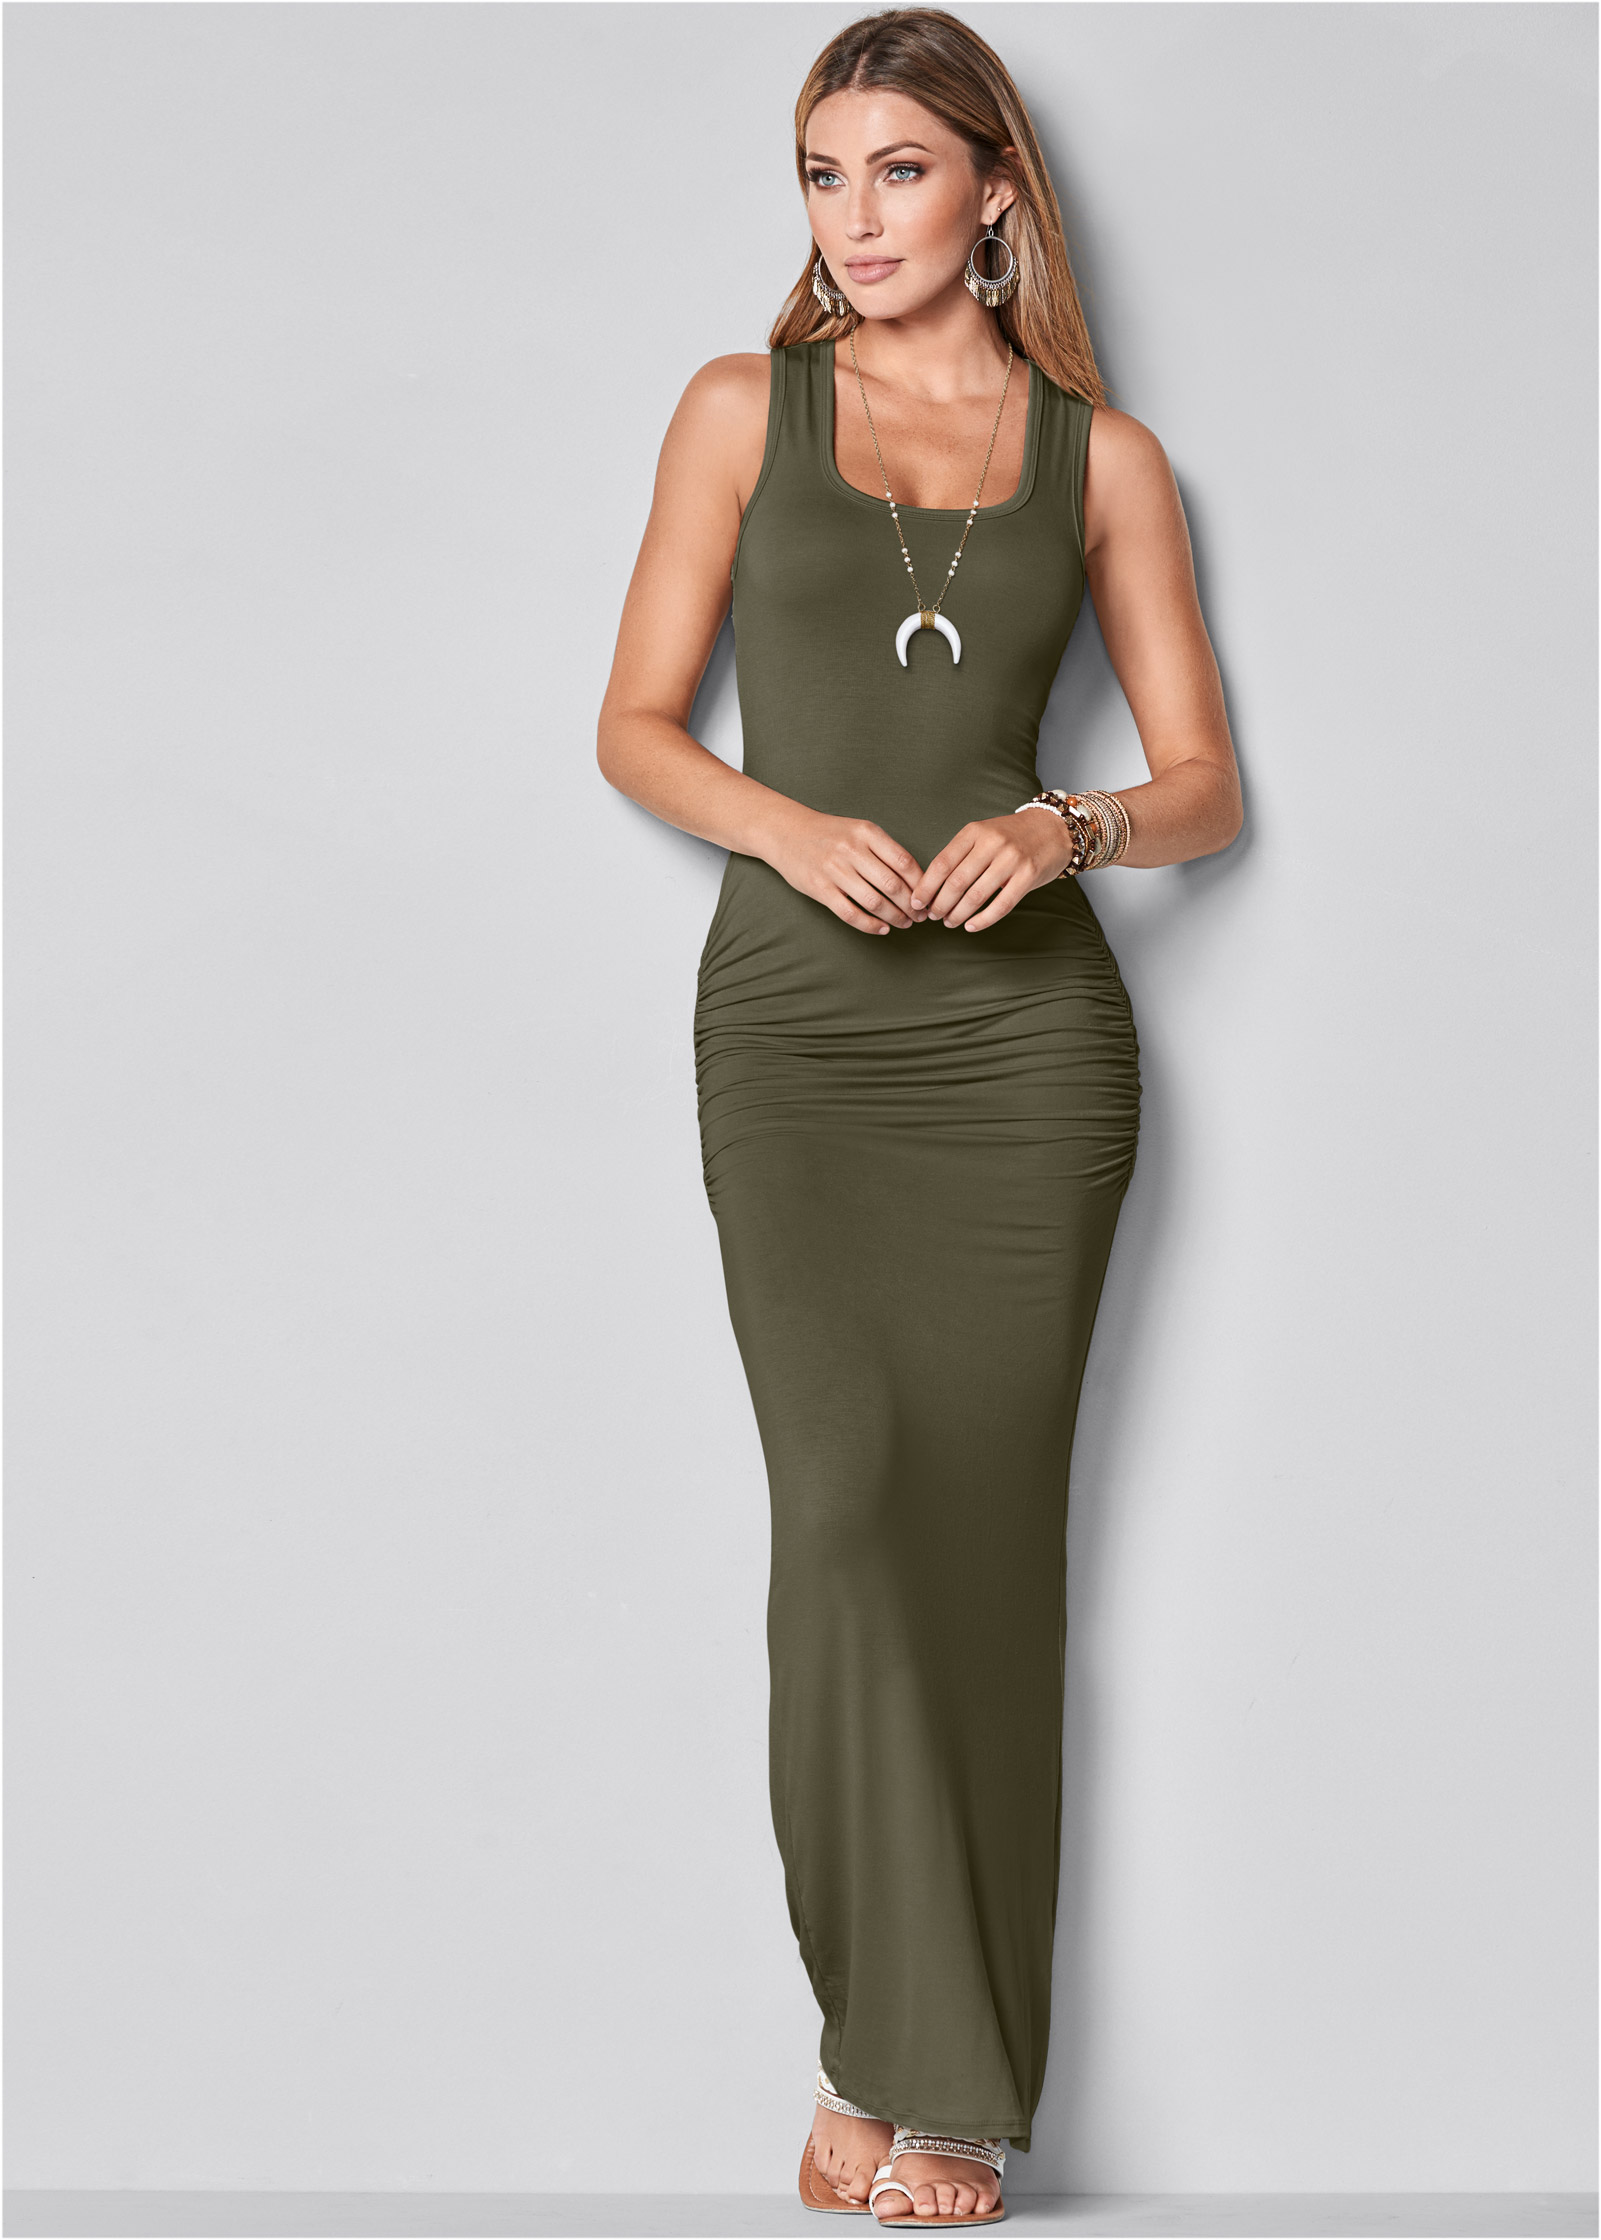 Shop VENUS's unique dress collection and find styles from versatile maxi  dresses, a- line, formal dresses, bodycon dresses & so much ...